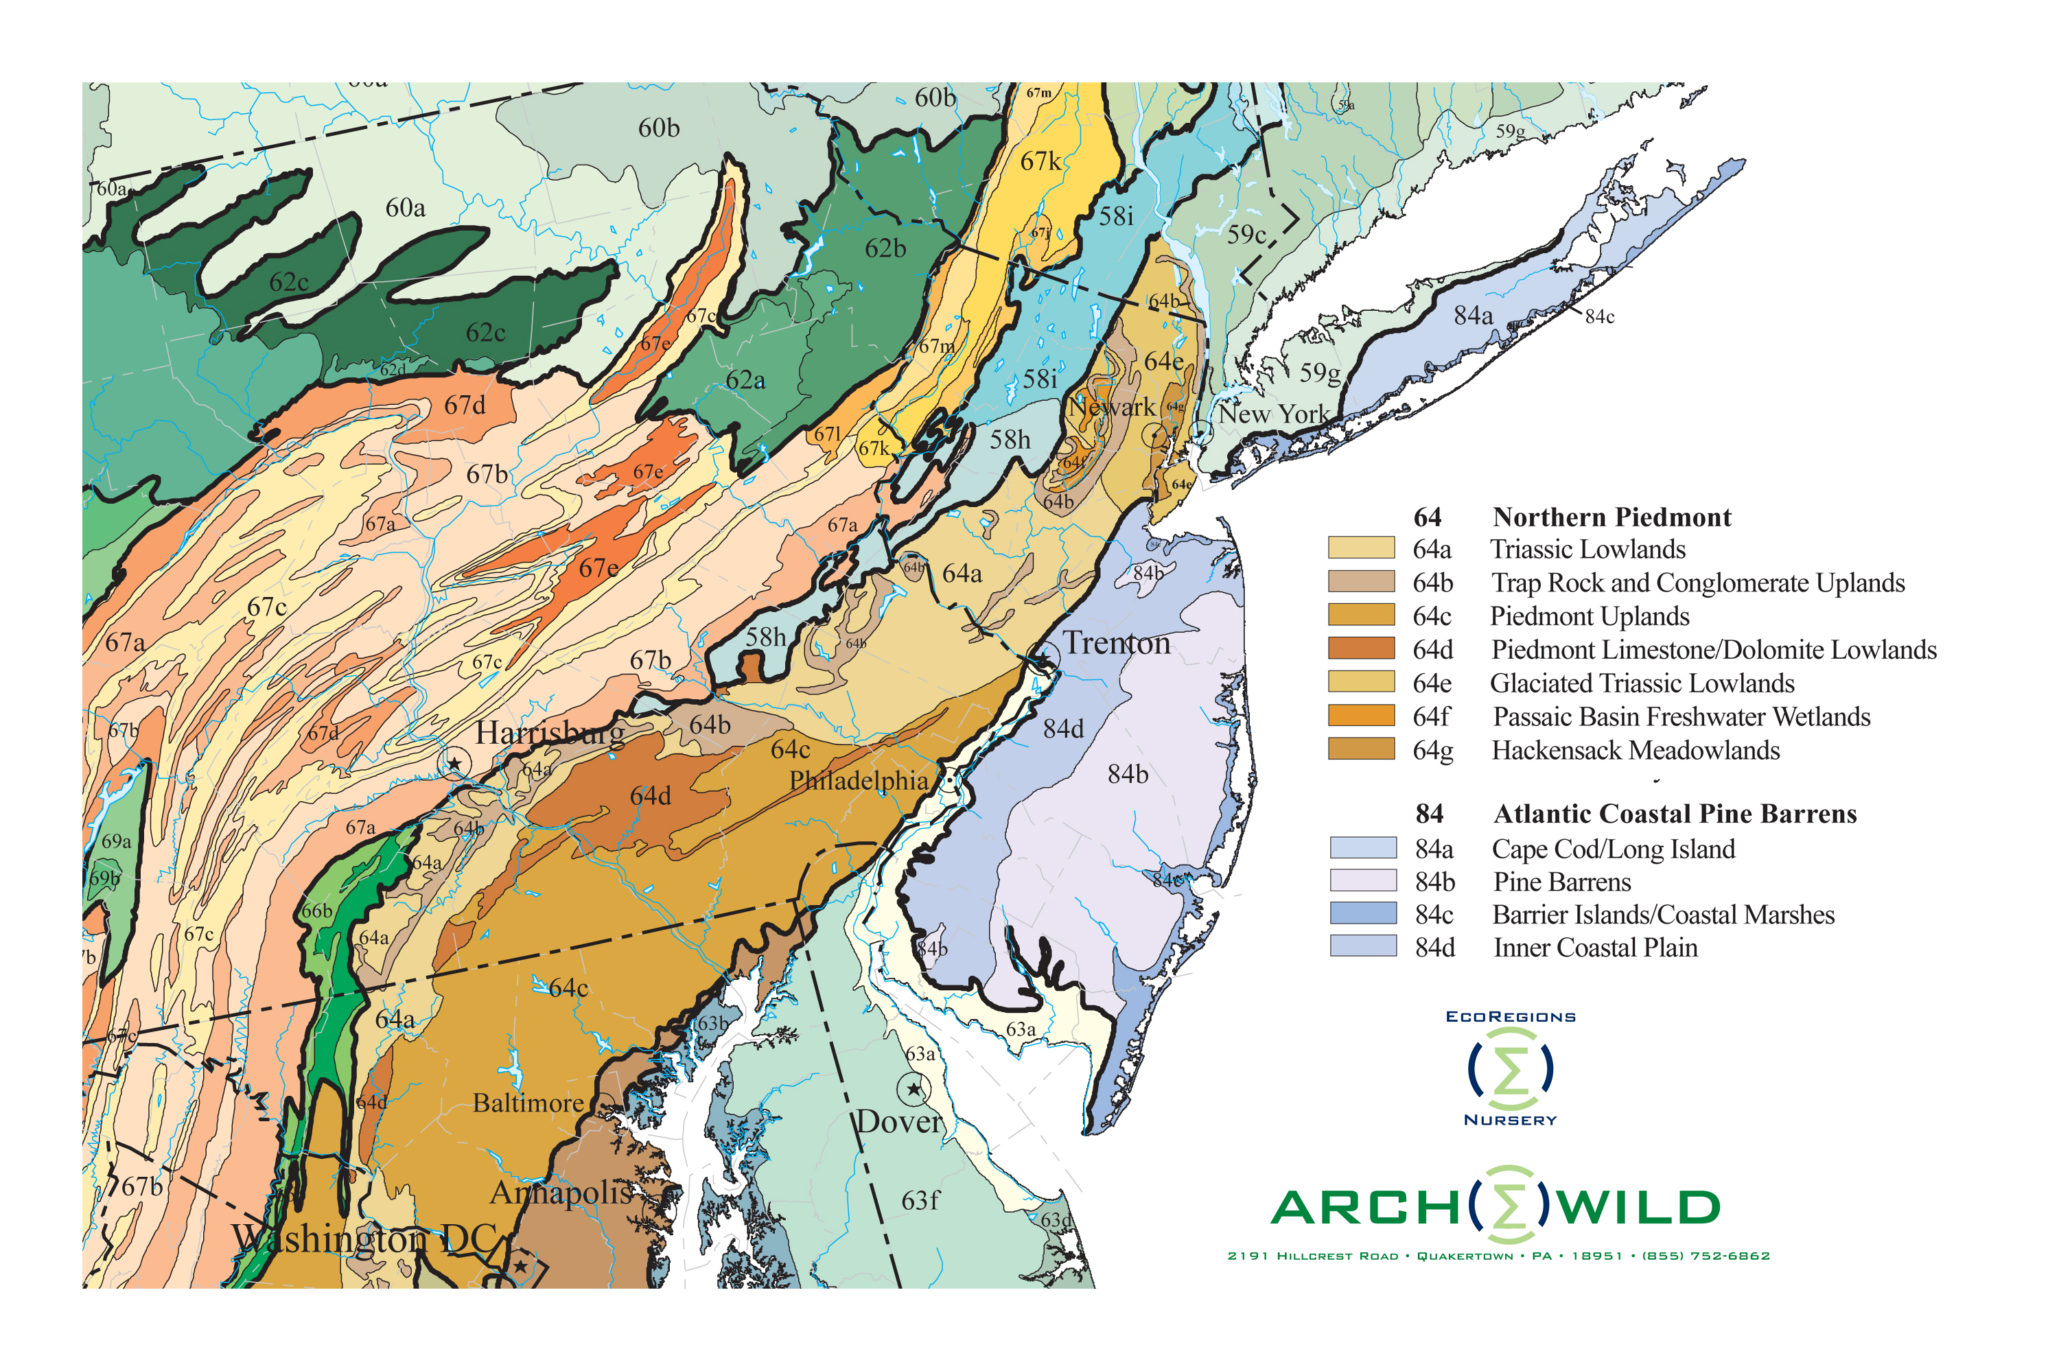 ArcheWild EcoRegion Level IV New Jersey